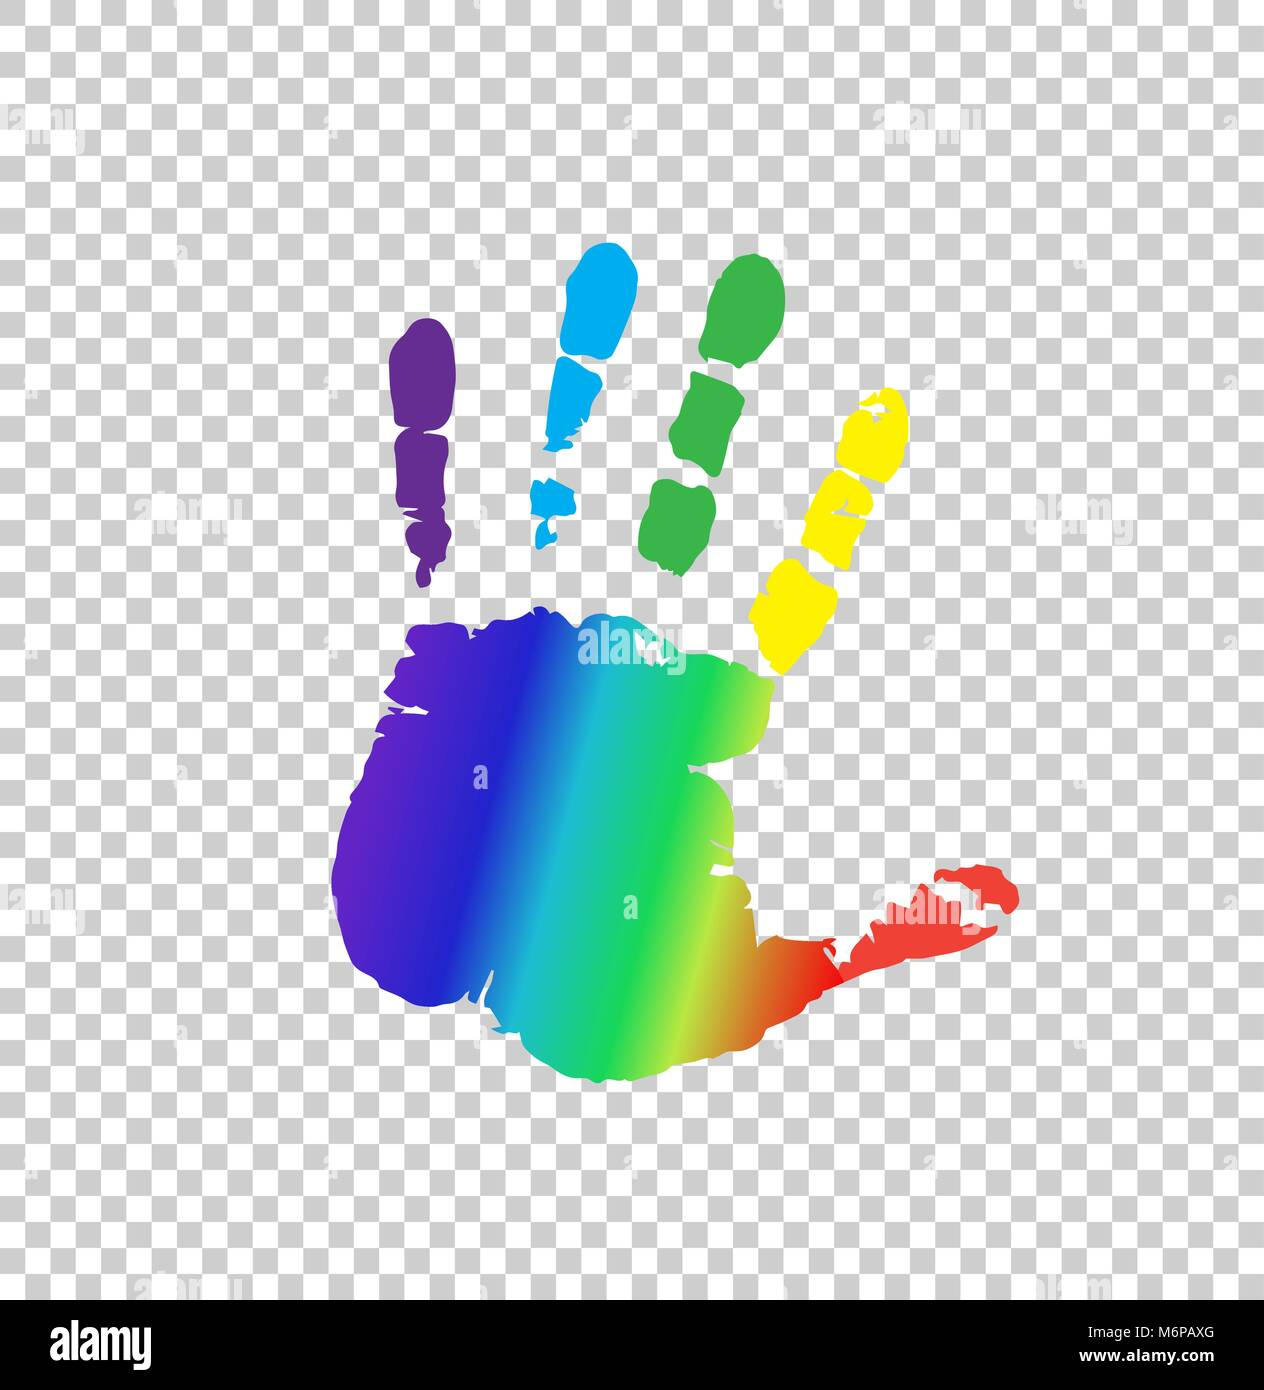 Rainbow multicolored silhouette of human handprint isolated on transparent background. Vector bright illustration - Stock Vector